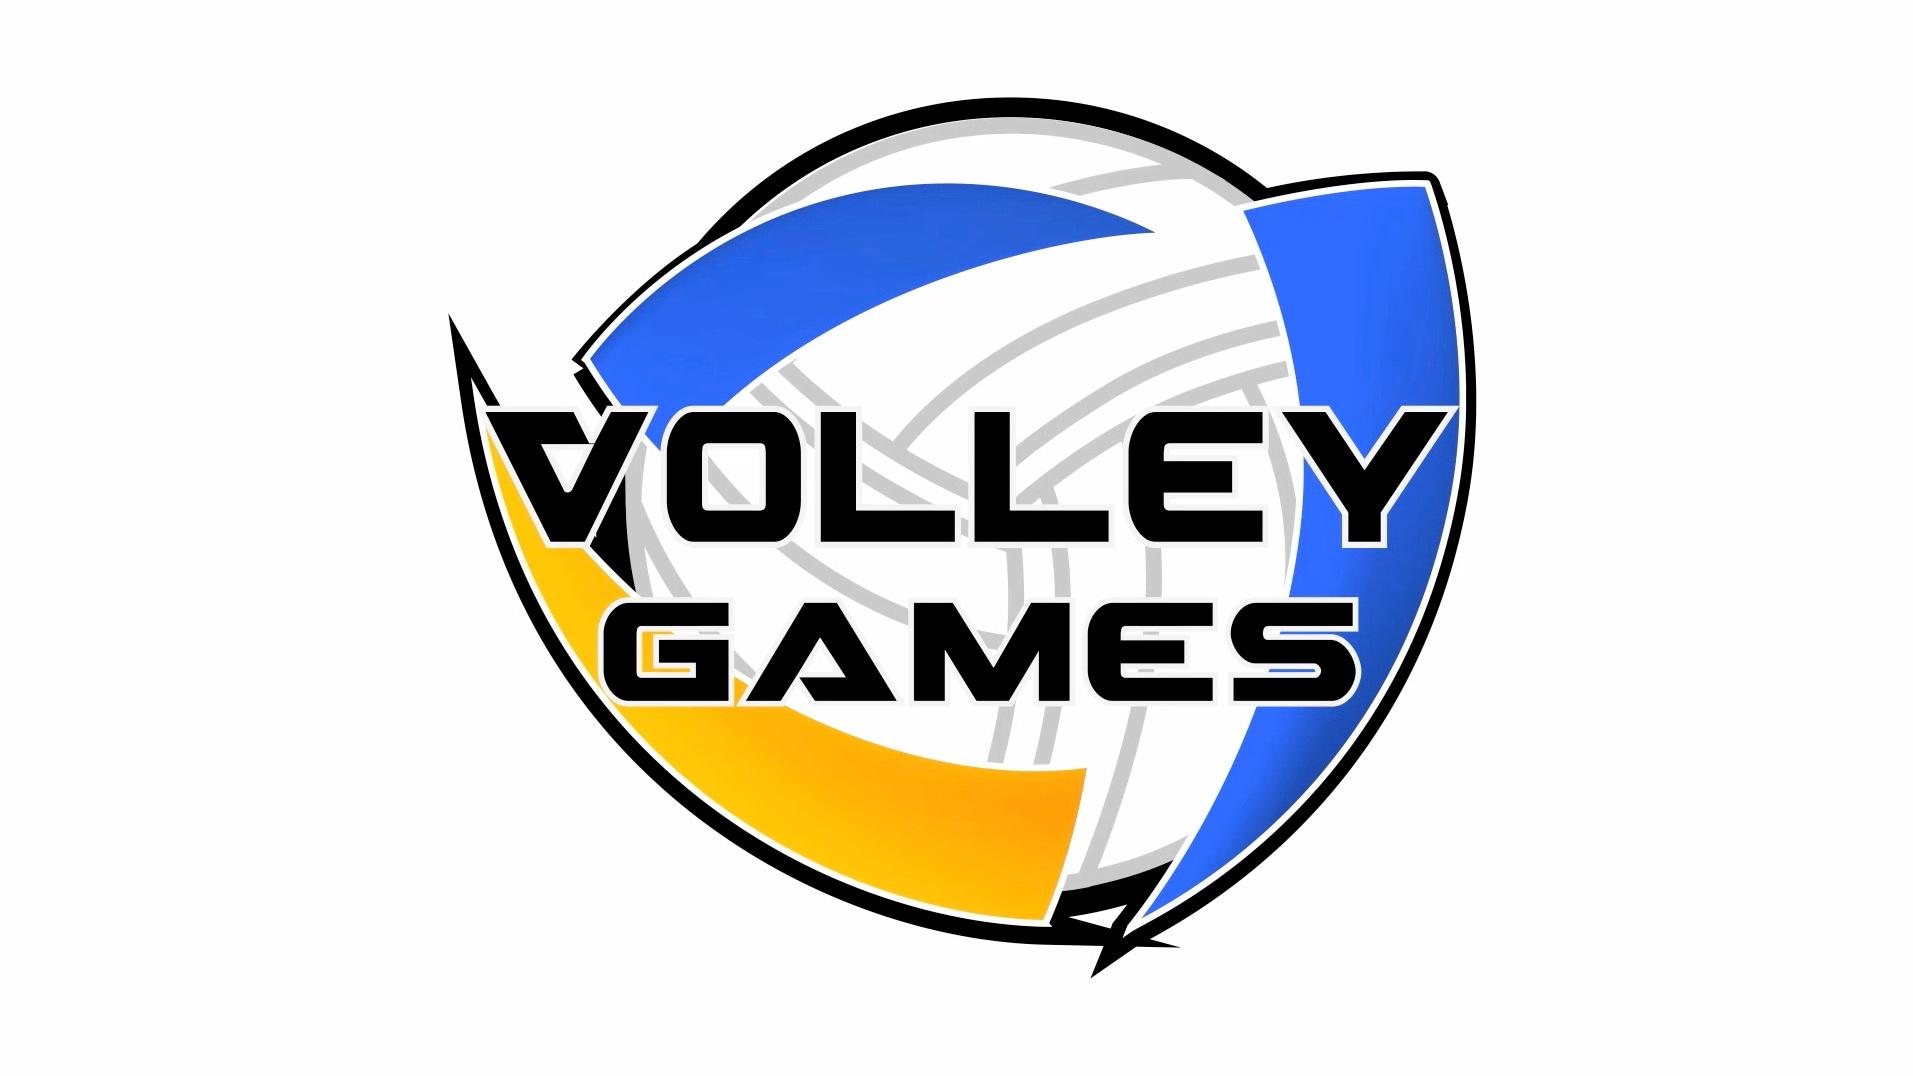 Volley Games - 03/03/17